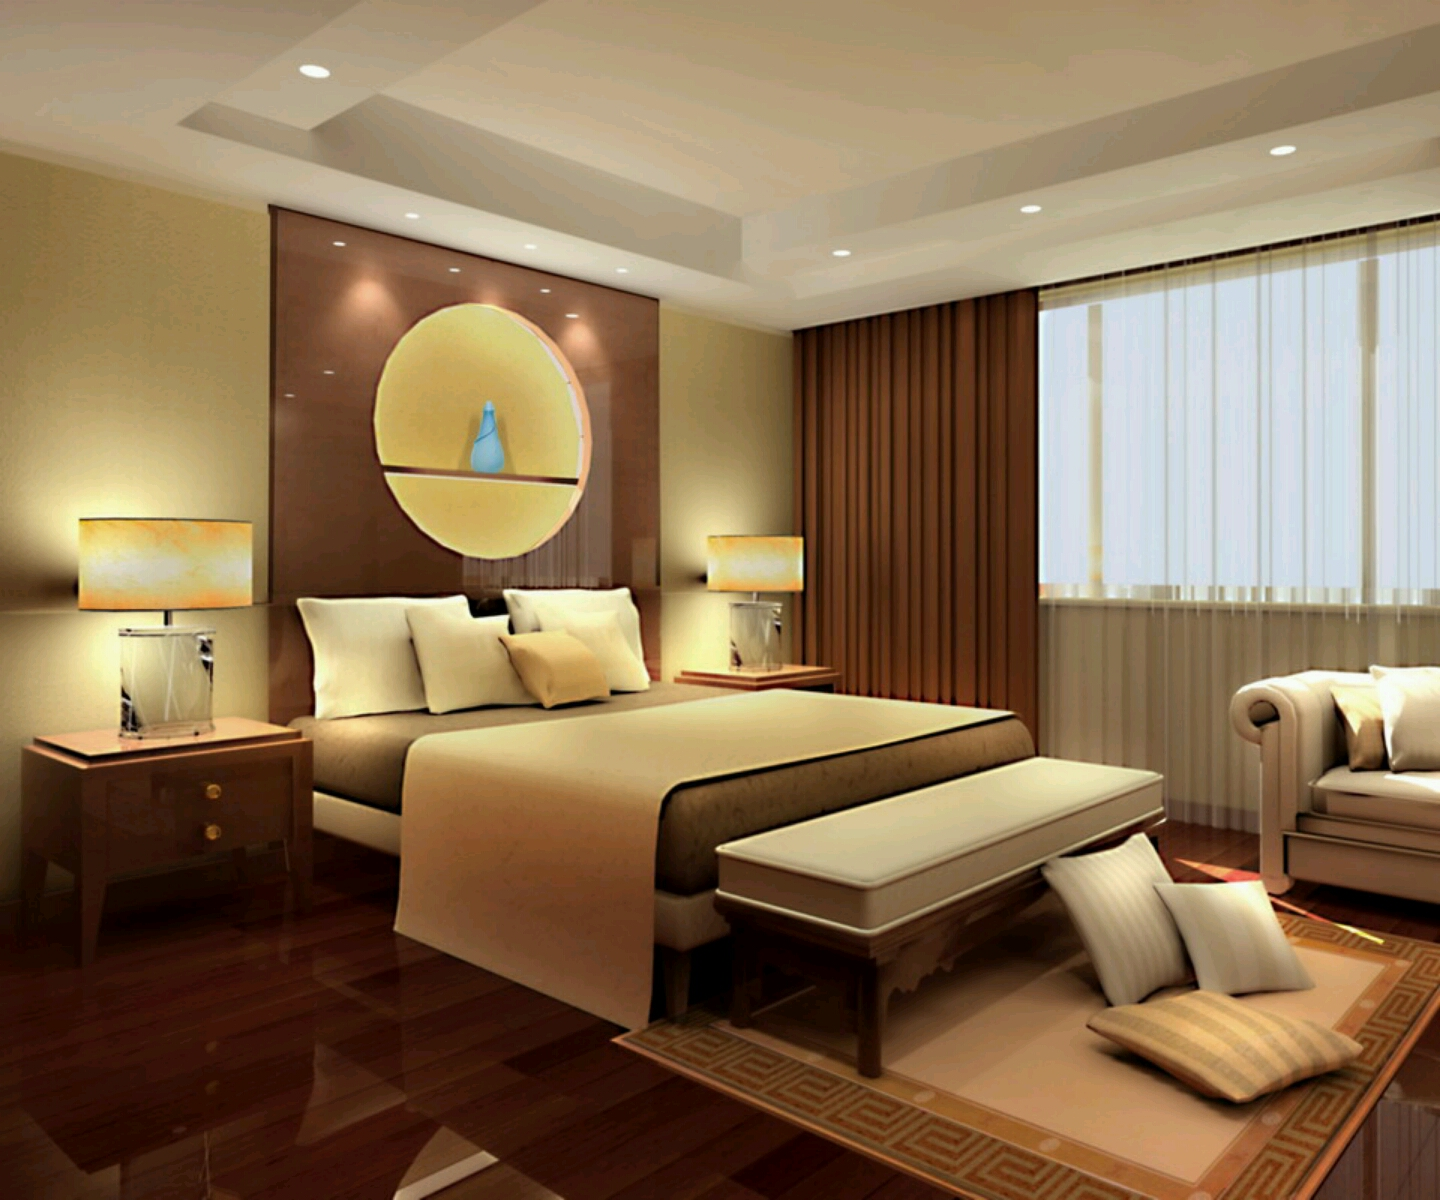 New home designs latest modern beautiful bedrooms interior decoration designs - Interior designing bedroom ...